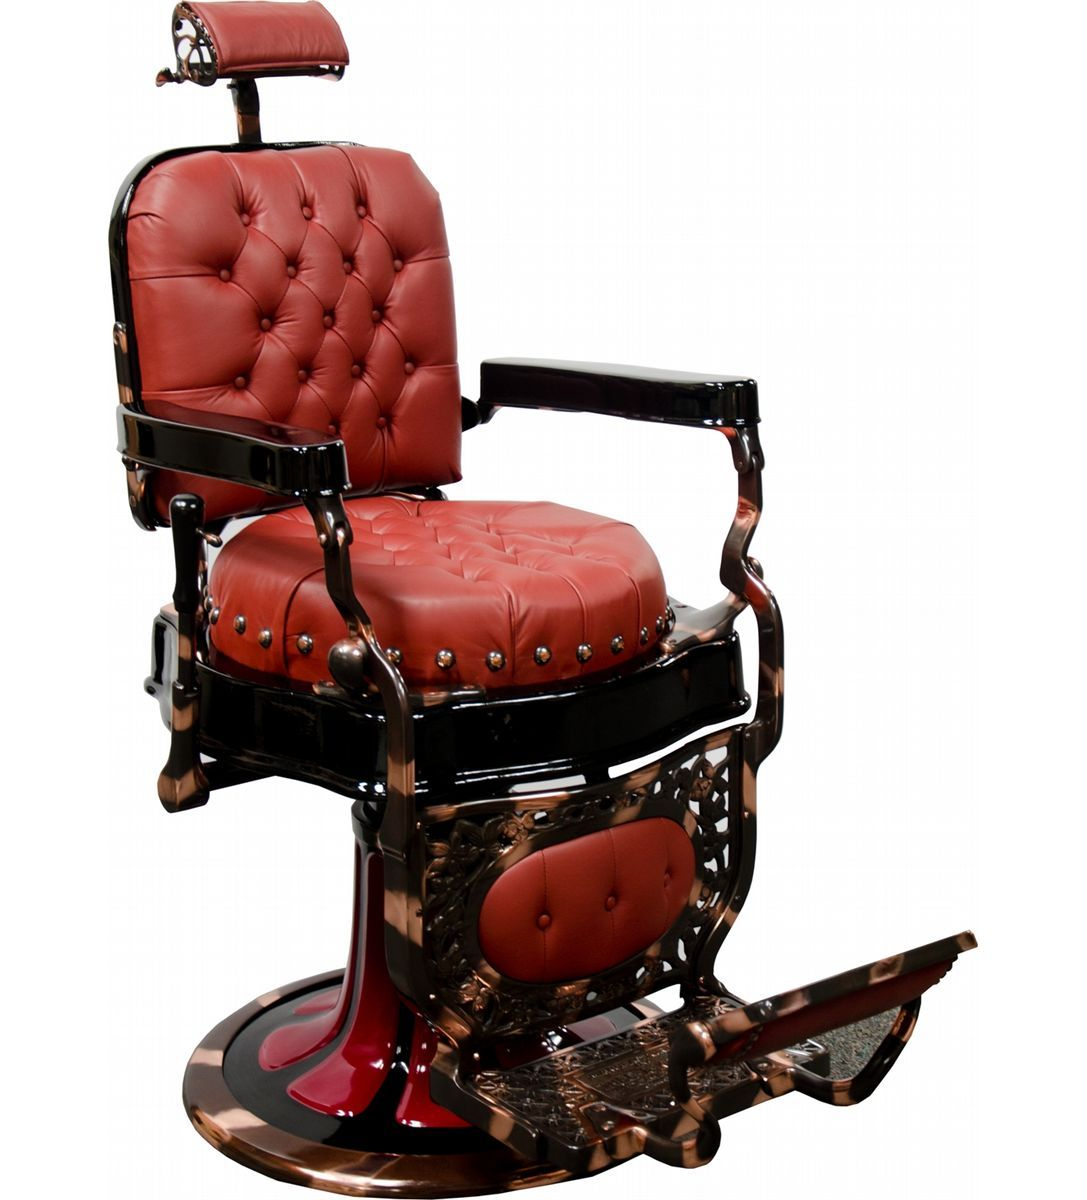 Vintage barber chairs google search